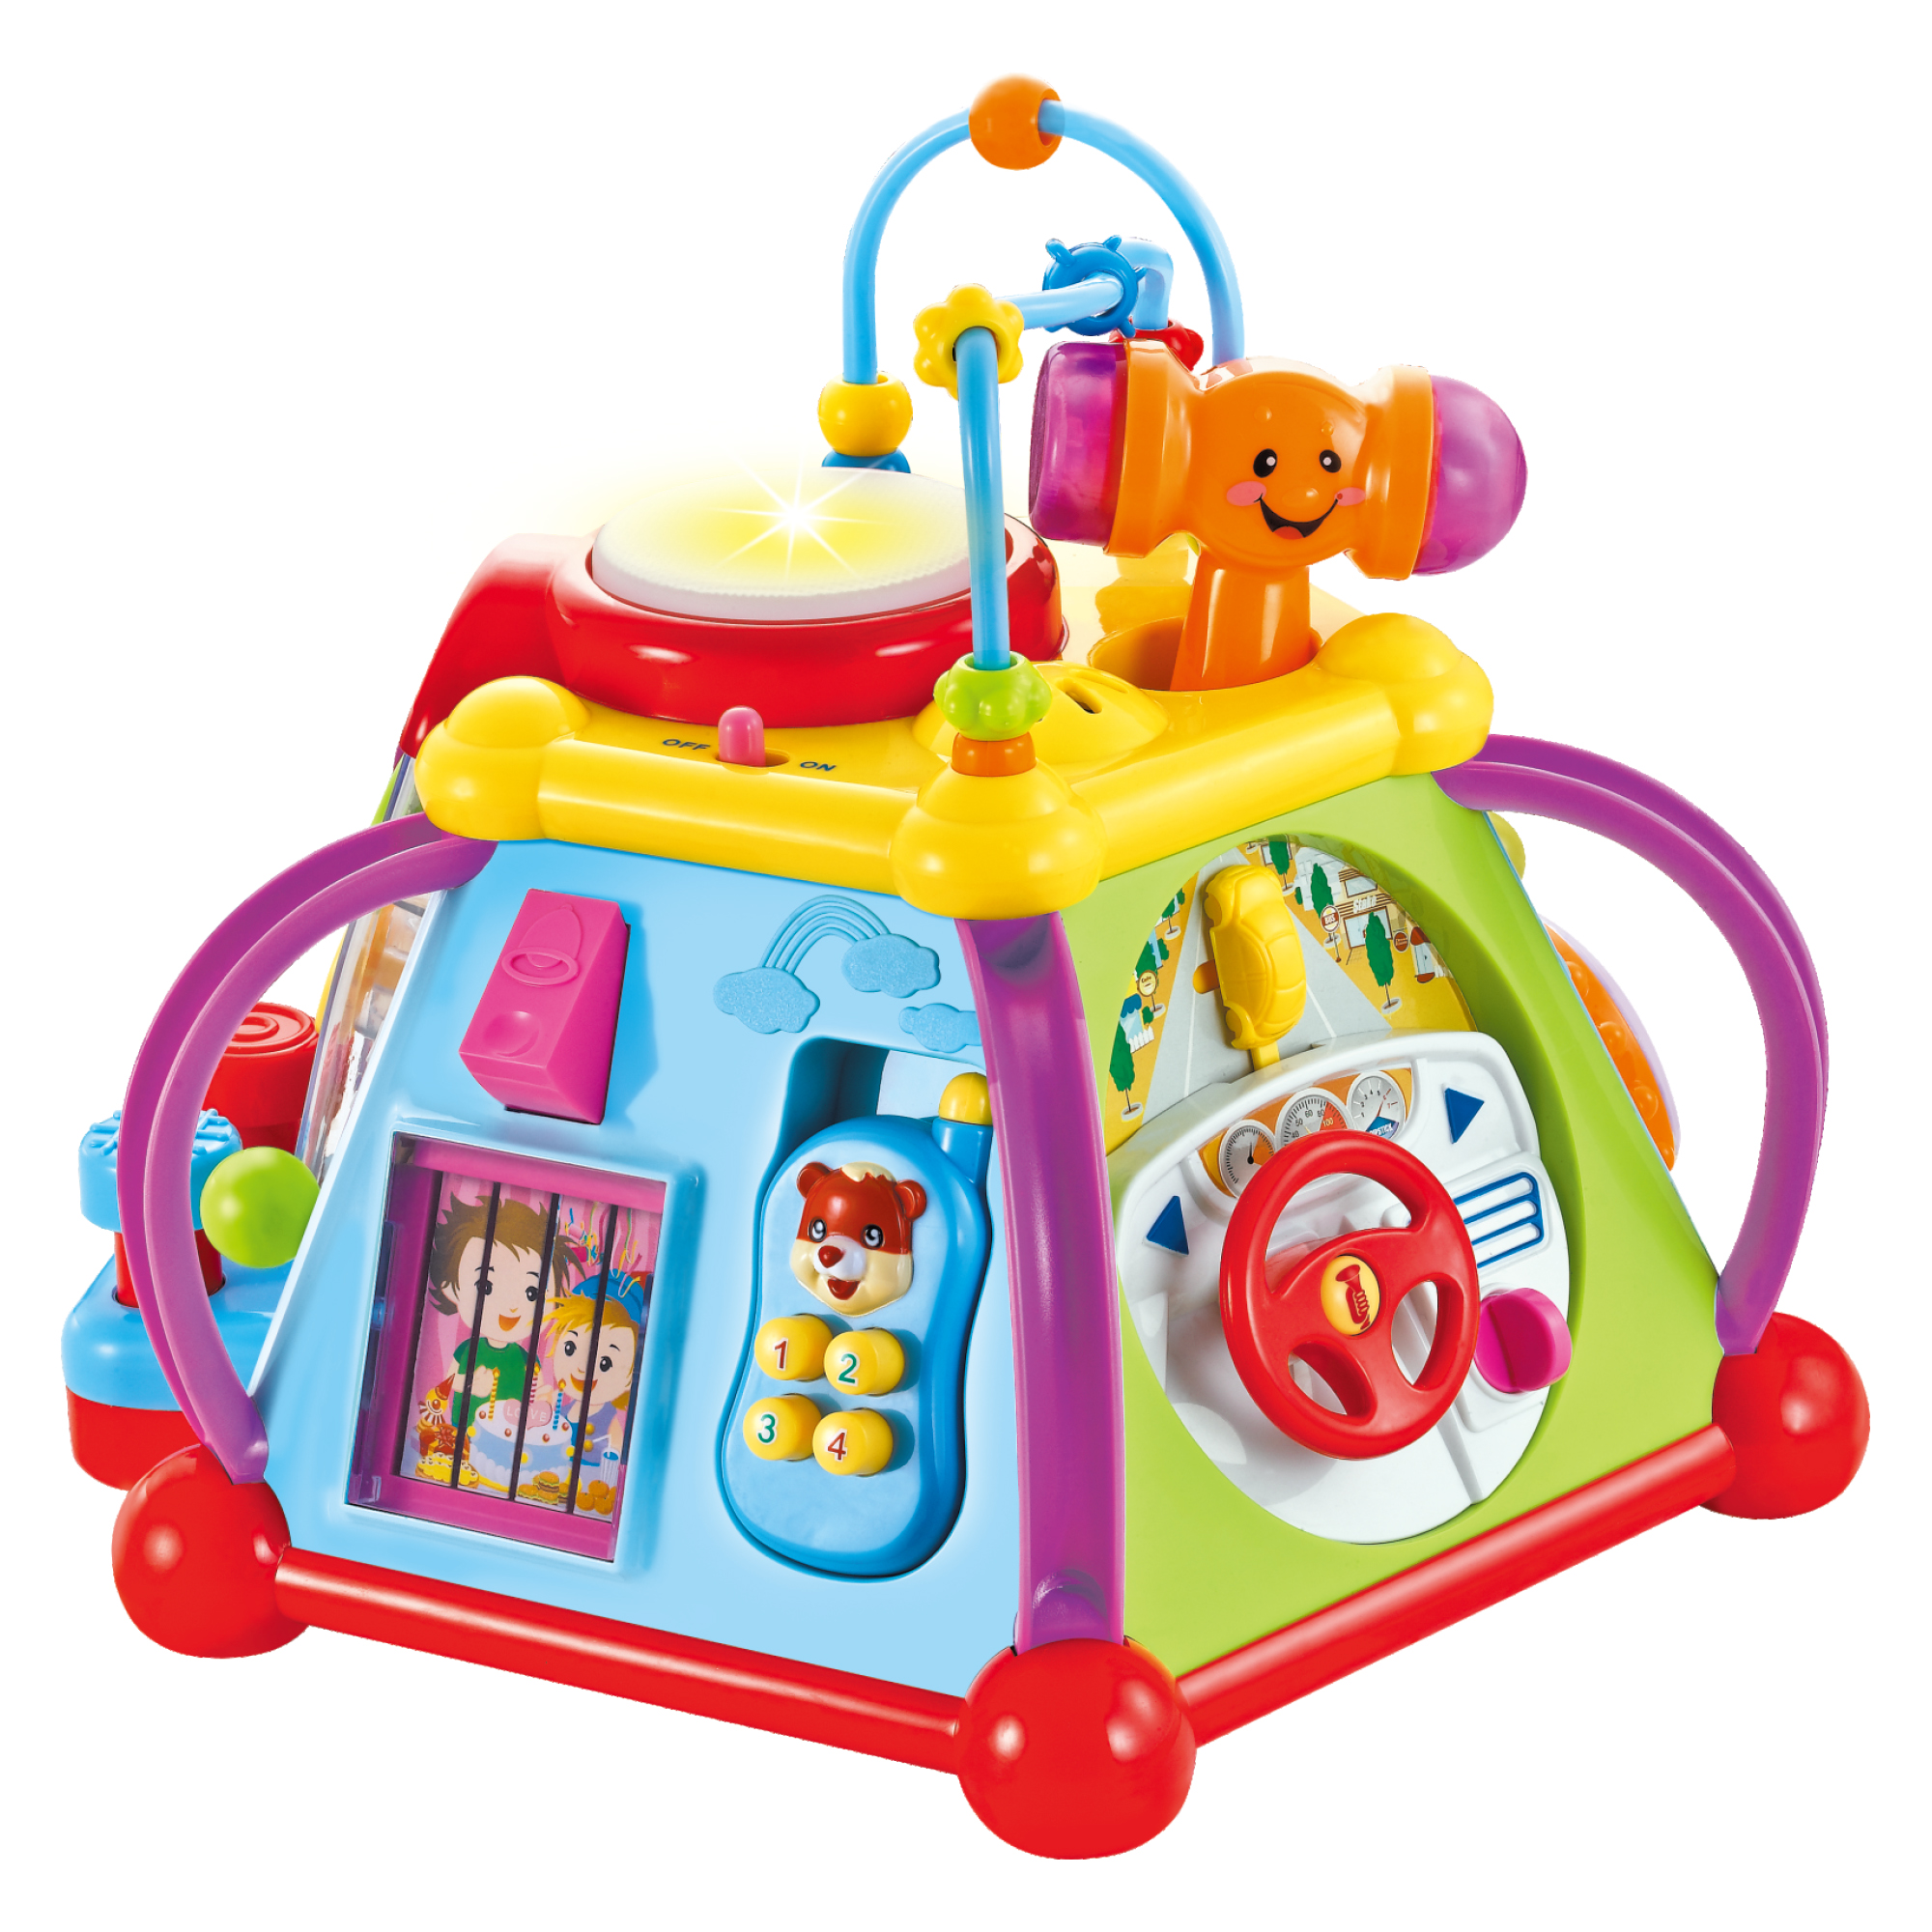 a safe interesting developing toy Busy activity cube Super Toys 12m develops fine motor skills and promotes speech development